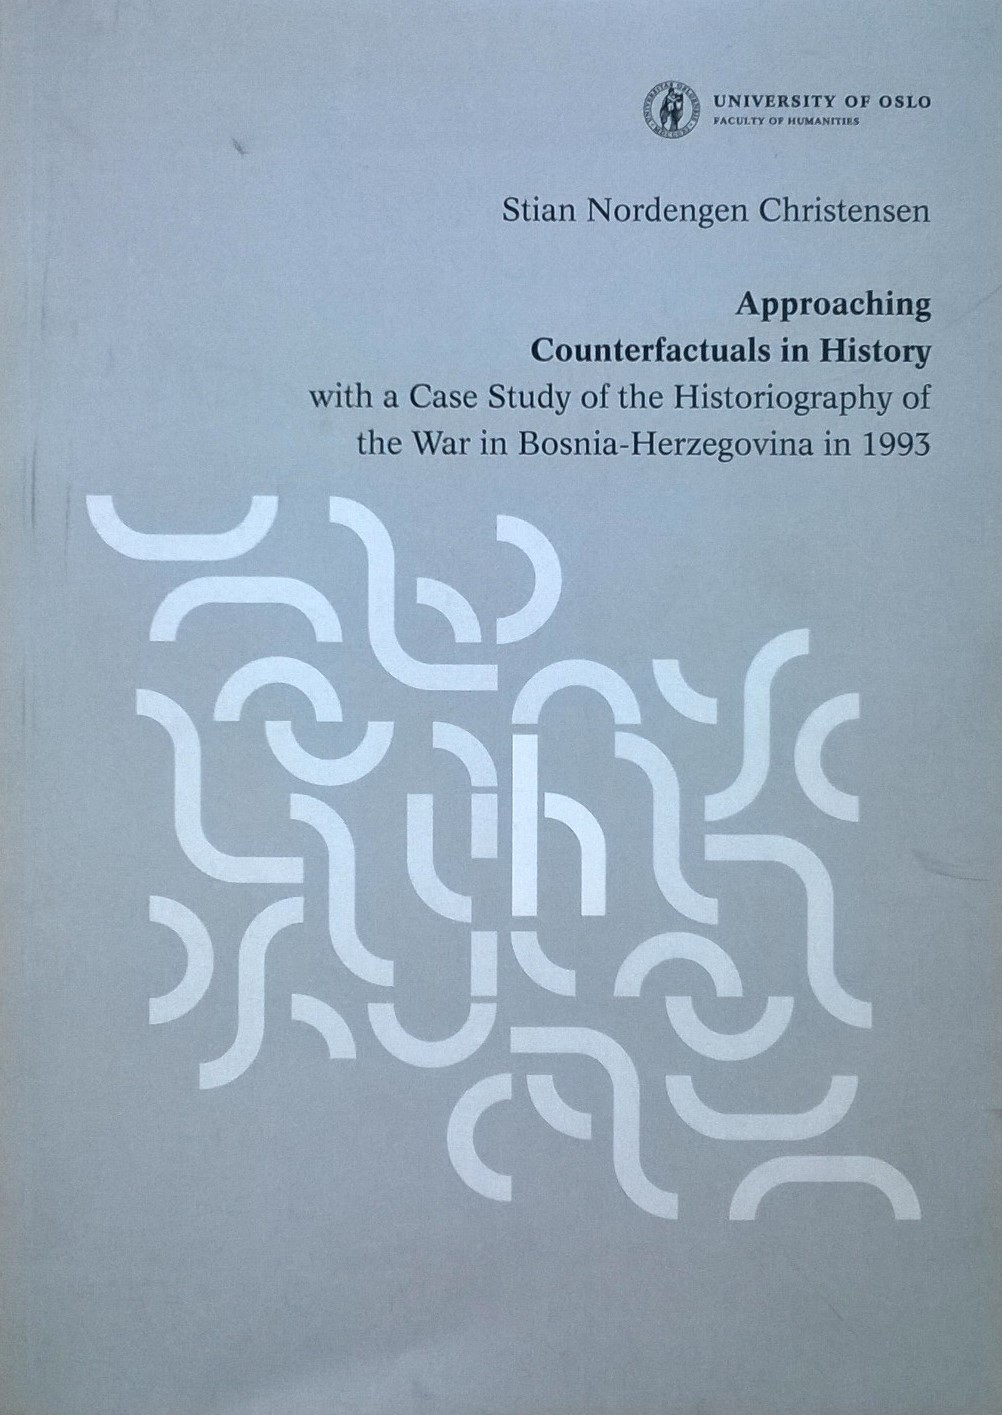 Christensen, Stian Nordengen Approaching Counterfactuals in History: with a Case Study of the Historiography of the War in Bosnia-Herzegovina in 1993